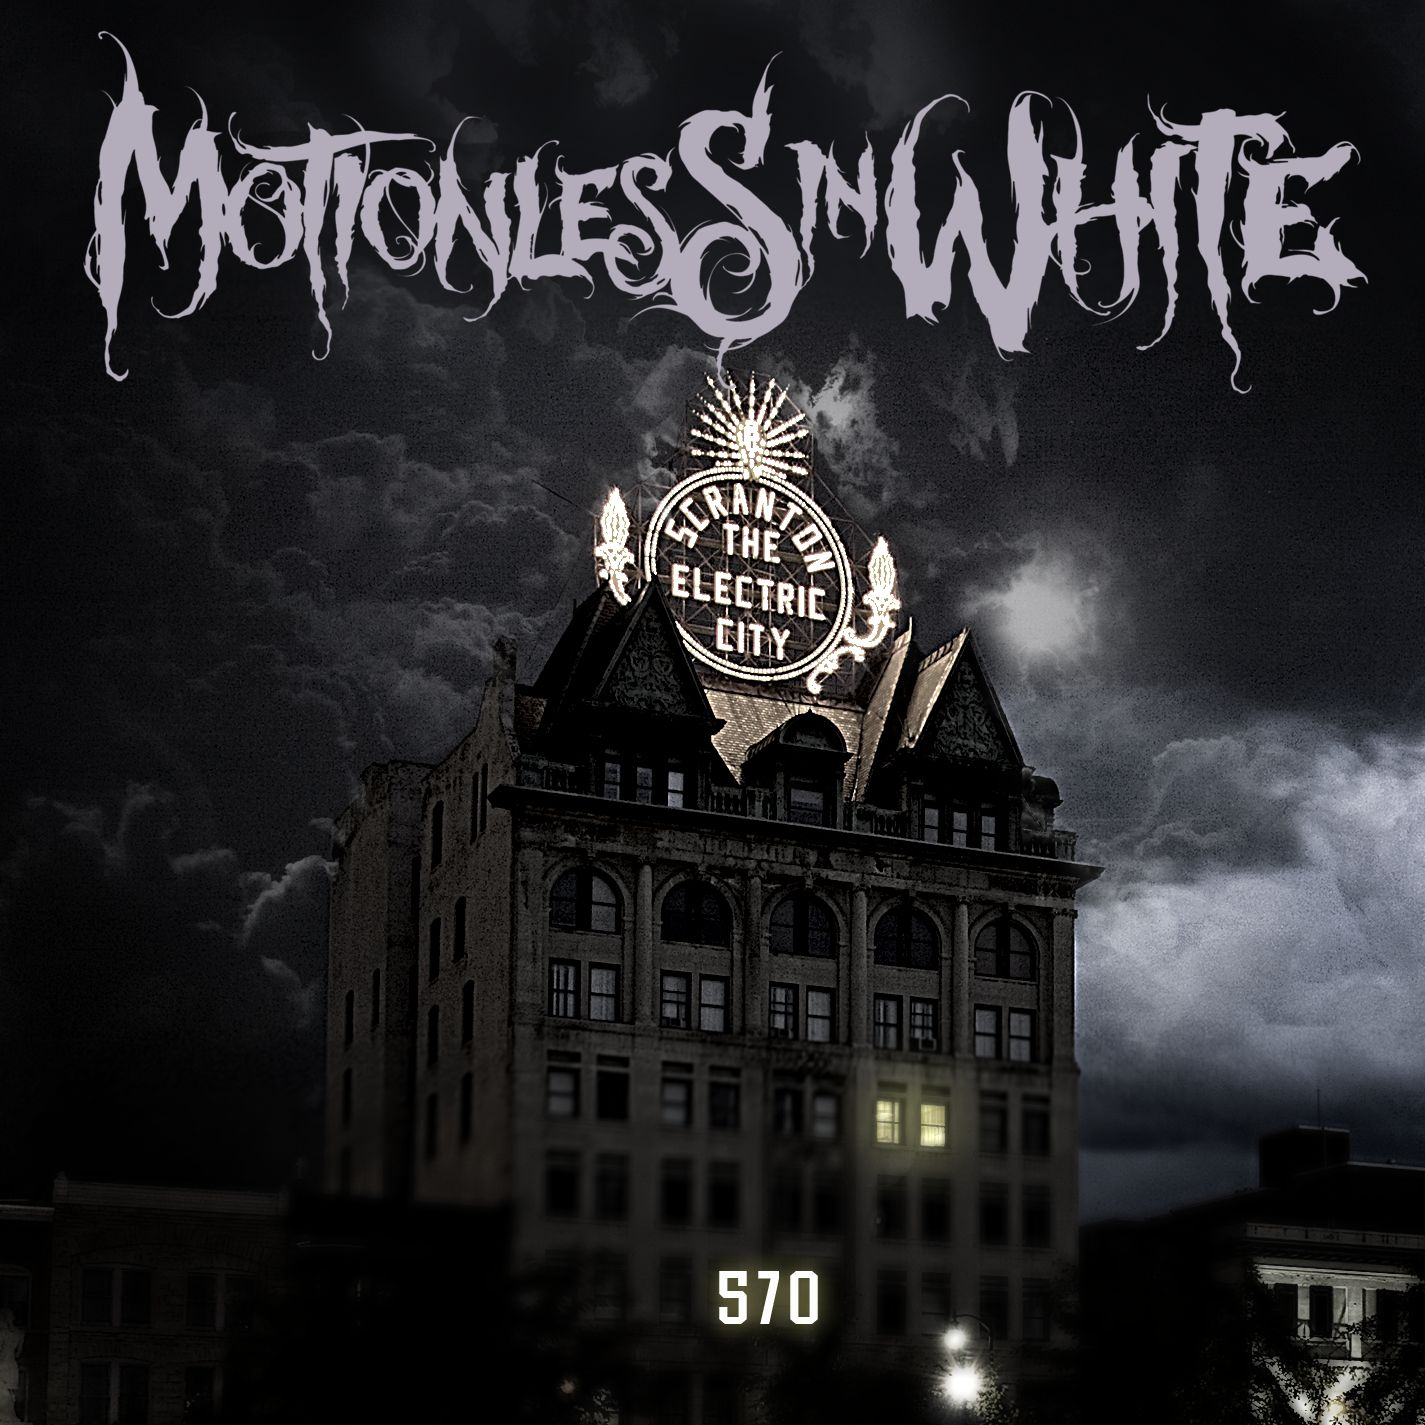 Motionless In White - 570 [single] (2016)